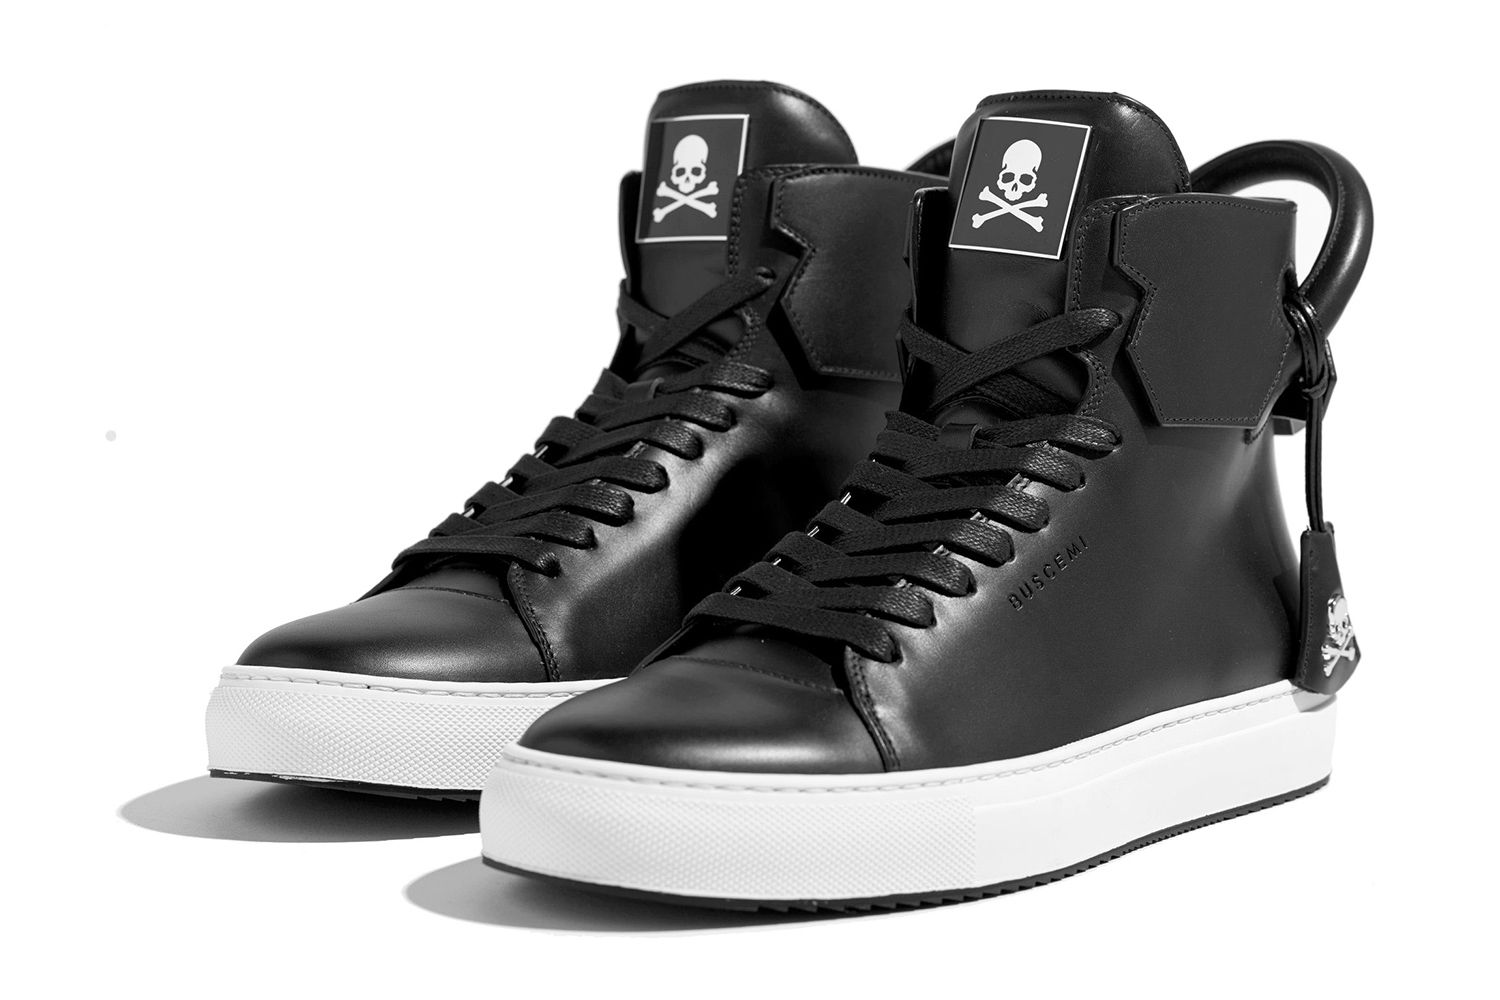 Buscemi has a rich history of collaborating with various high-end designers, and now mastermind JAPAN is joining that extensive roster of partners. Featuring a supple all-black leather upper, the Buscemi x mastermind JAPAN 125mm high-tops combine the best of Italian craftsmanship with Japanese streetwear culture. Subtle details such as mastermind's signature skull-and-crossbones can also be seen …